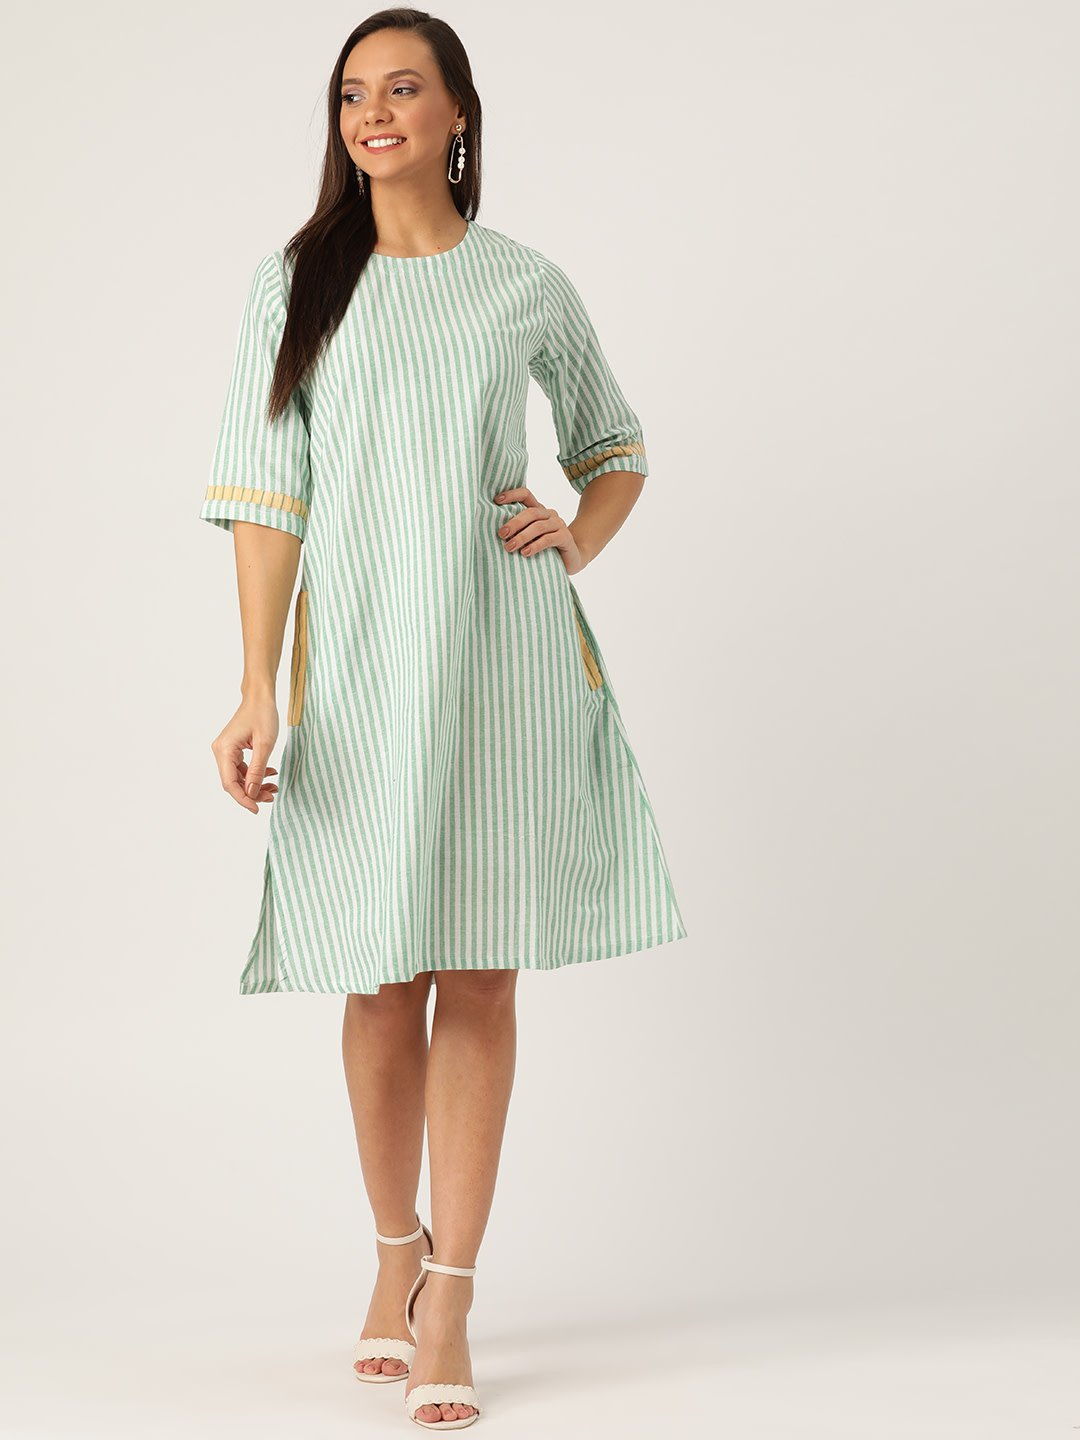 GREEN AND WHITE STRIPES DRESS